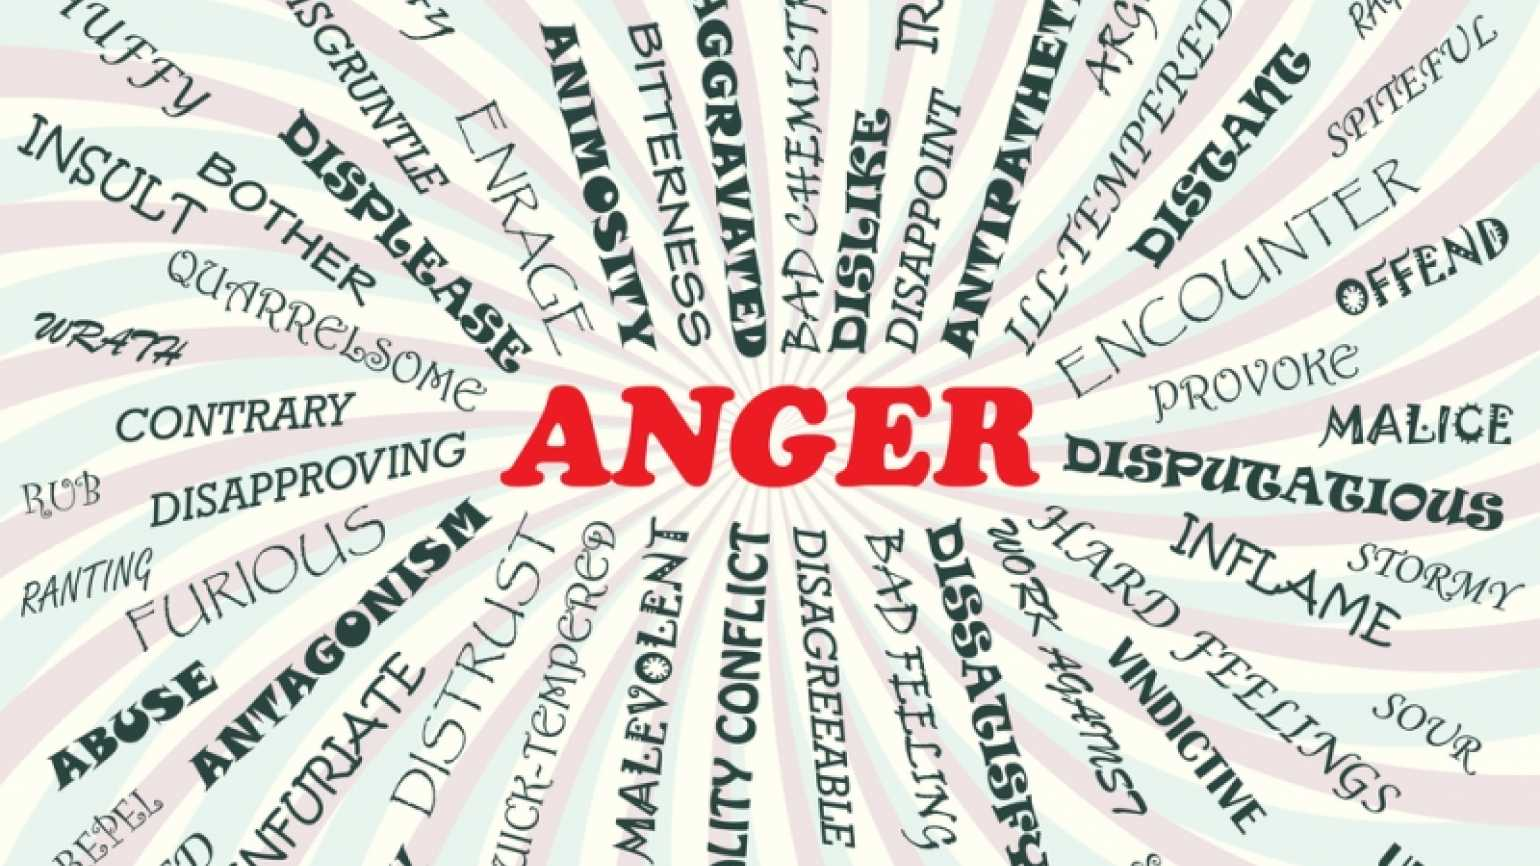 Dealing with anger biblically